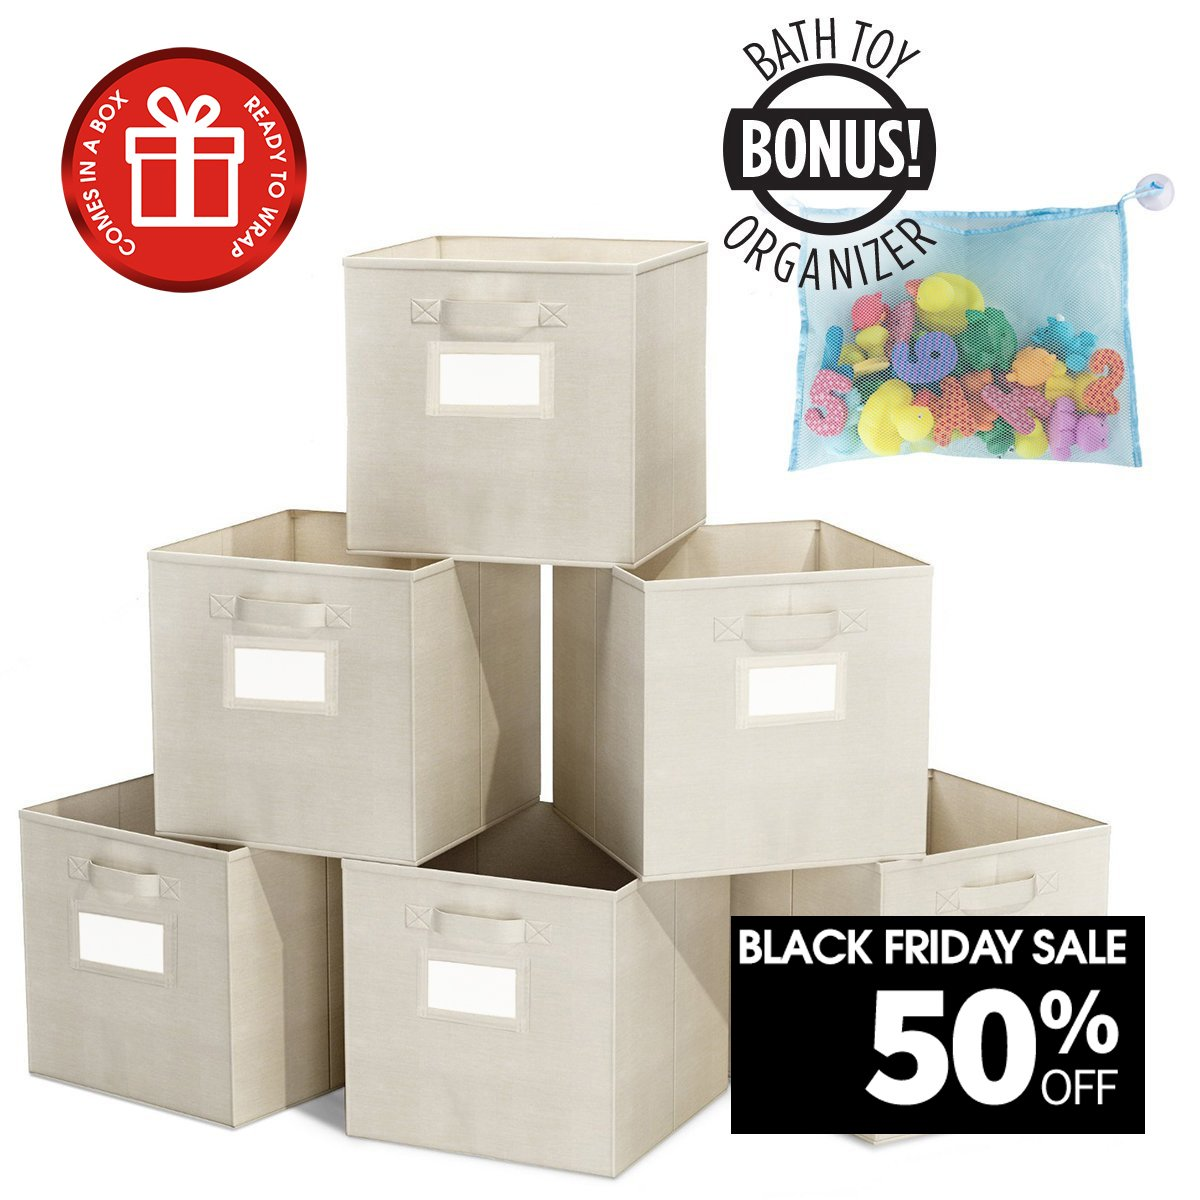 ClosetMate Foldable Cube Storage Bins - 6 Pack - Bonus Toy Organizer- With Label Holder for Better Organization - Fabric Cubes Are Collapsible Great Organizer for Shelf, Closet or Storage